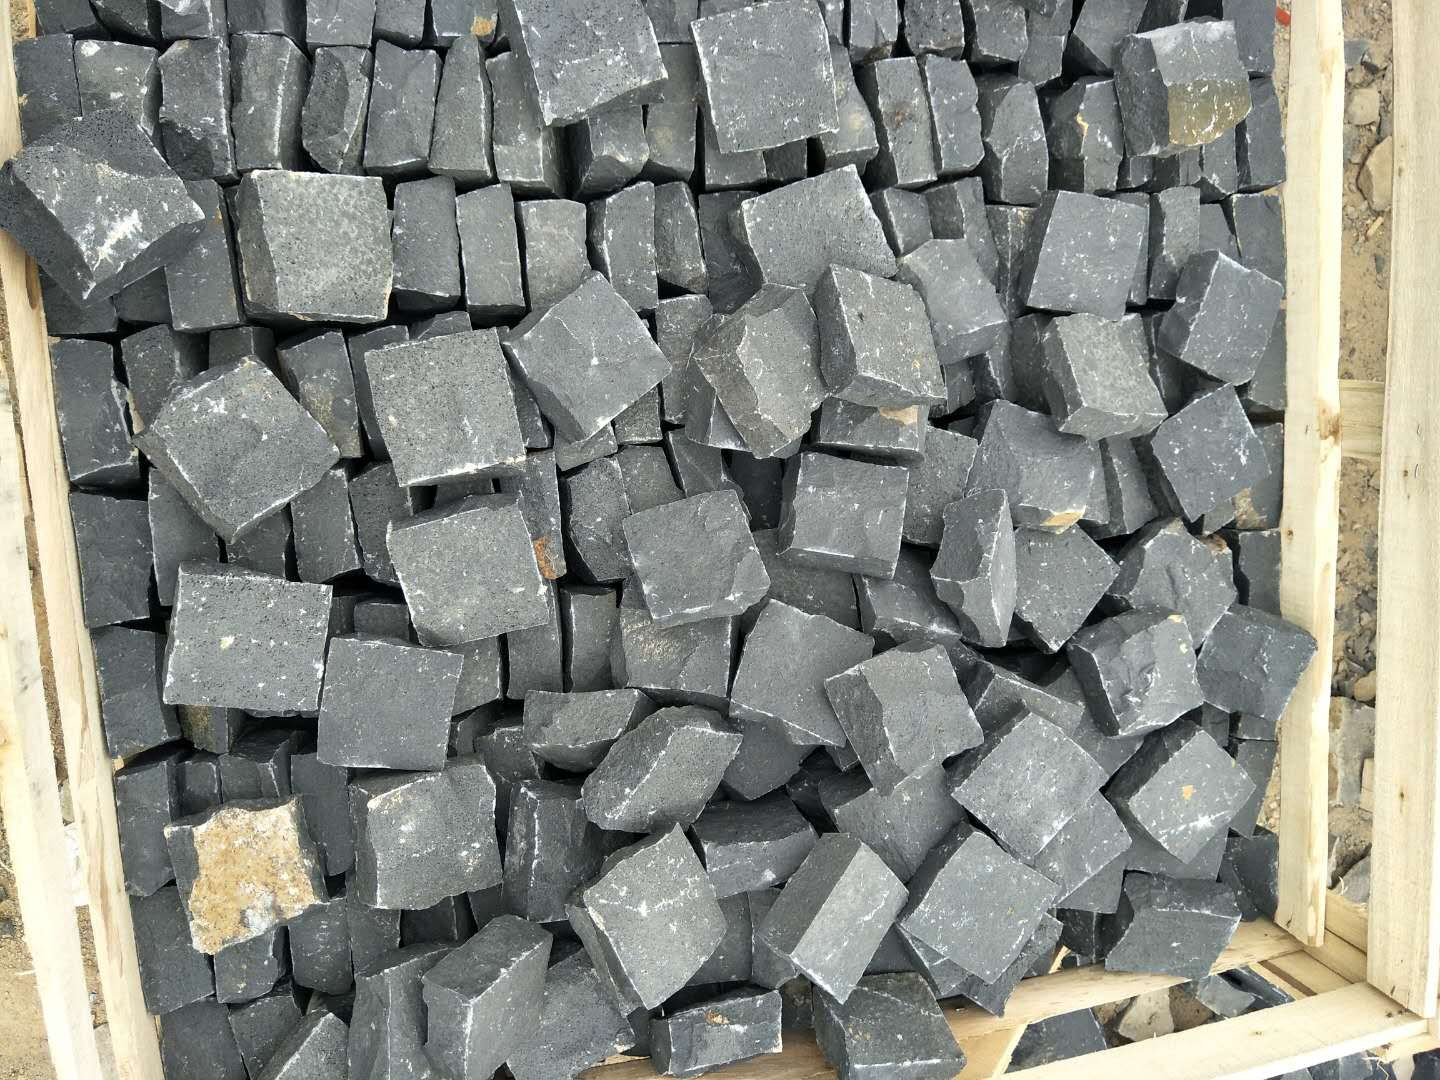 Good quality basalt